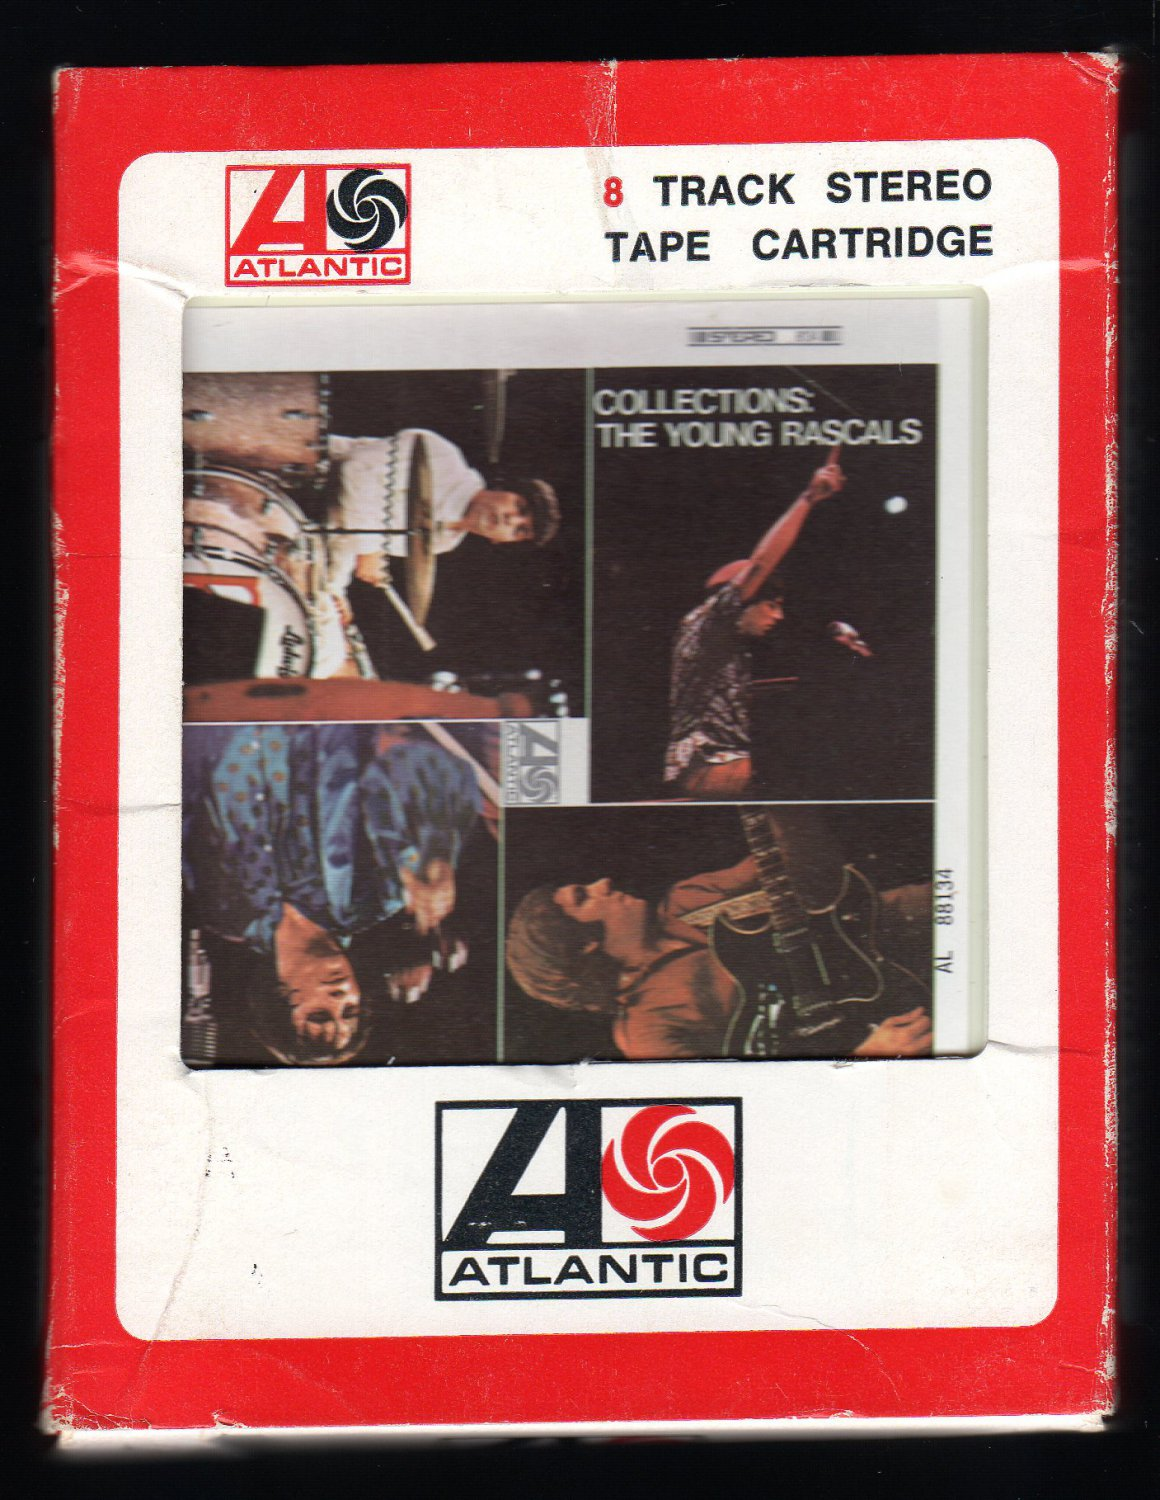 The Young Rascals - Collections 1967 AMPEX LEAR ATLANTIC A45 8-TRACK TAPE